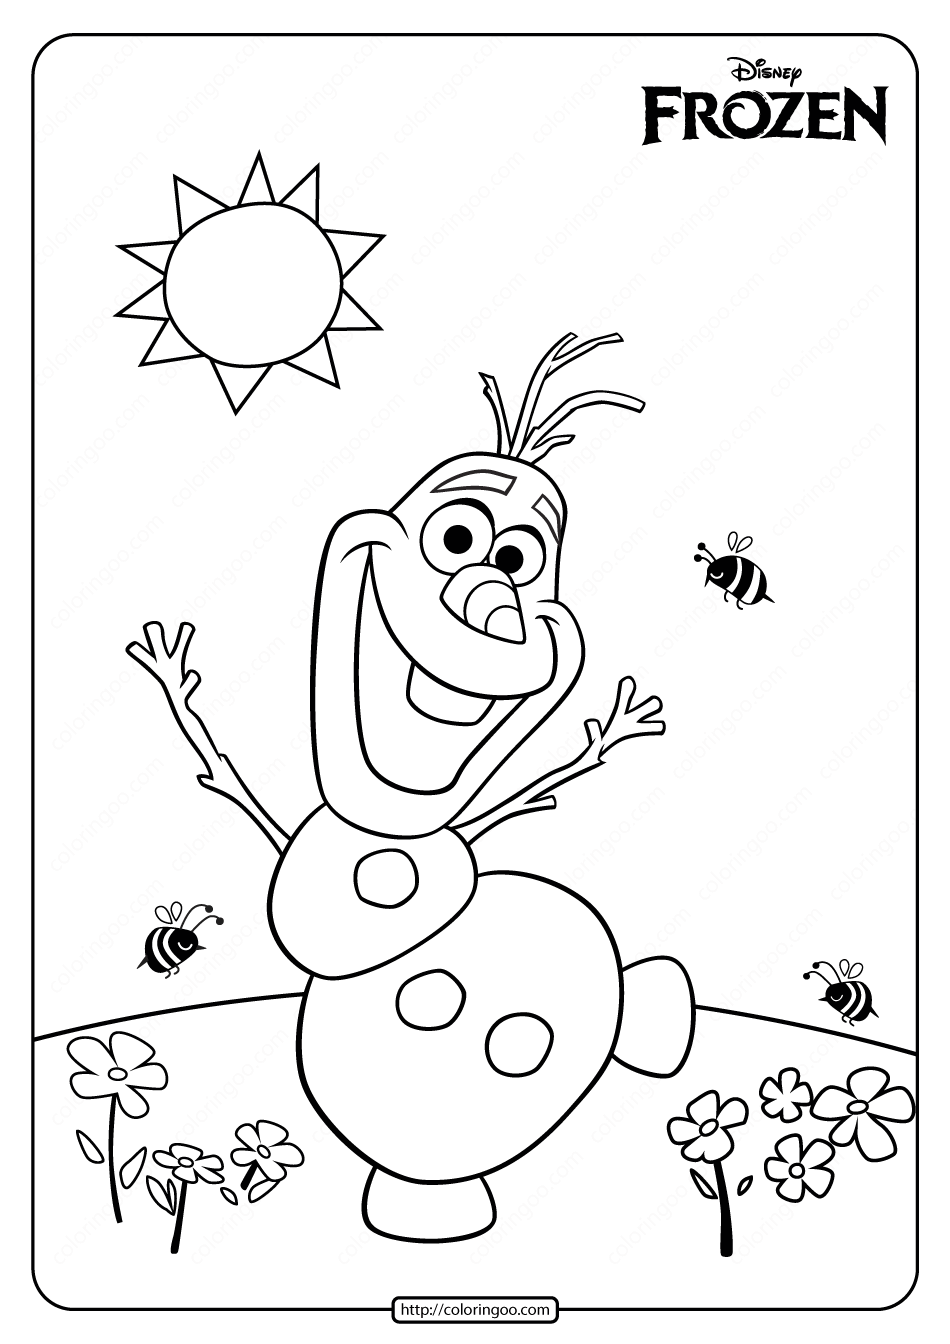 Printable Disney Frozen Olaf Summer Coloring Page Frozen Coloring Pages Frozen Coloring Elsa Coloring Pages